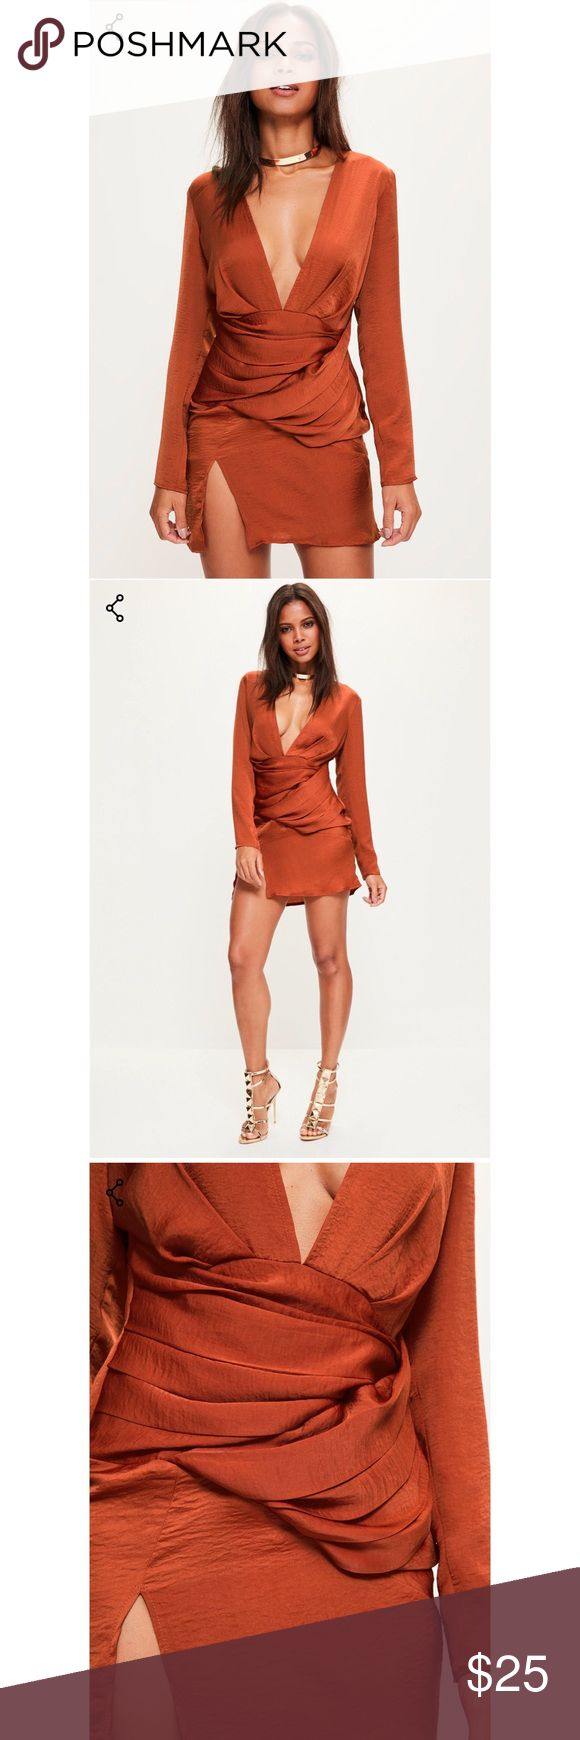 BNWT Missguided Mini Dress Size US 8 Brand new with tags Missguided size US 8 mini dress in a rust color.  Slip into this silky orange number and you're bound to turn heads this party season. this stylish long-sleeved shift dress rocks a seductive plunge neckline, while gathered detailing showing off your waist perfectly. it's a gorgeous addition to any party wear collection - pair it with sky-high heels for head-turning impact!  regular fit - concealed back zip   100% polyester. Hand wash…